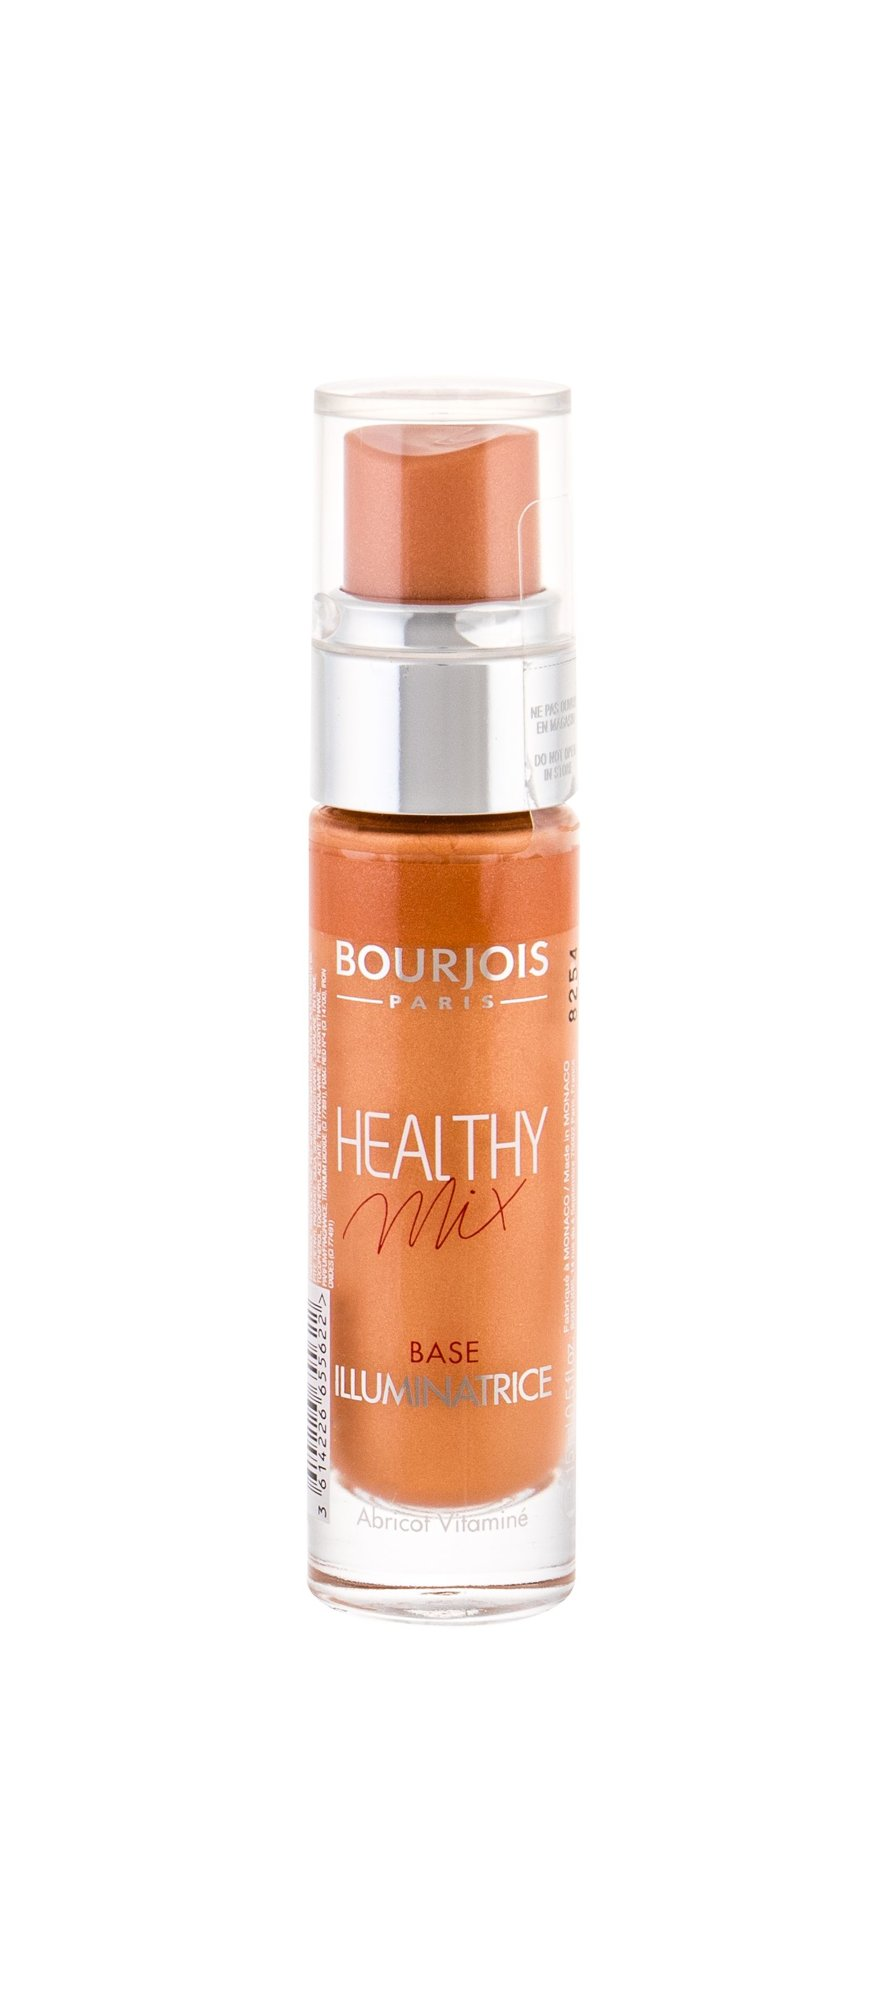 BOURJOIS Paris Healthy Mix Makeup Primer 15ml 02 Apricot Vitamined